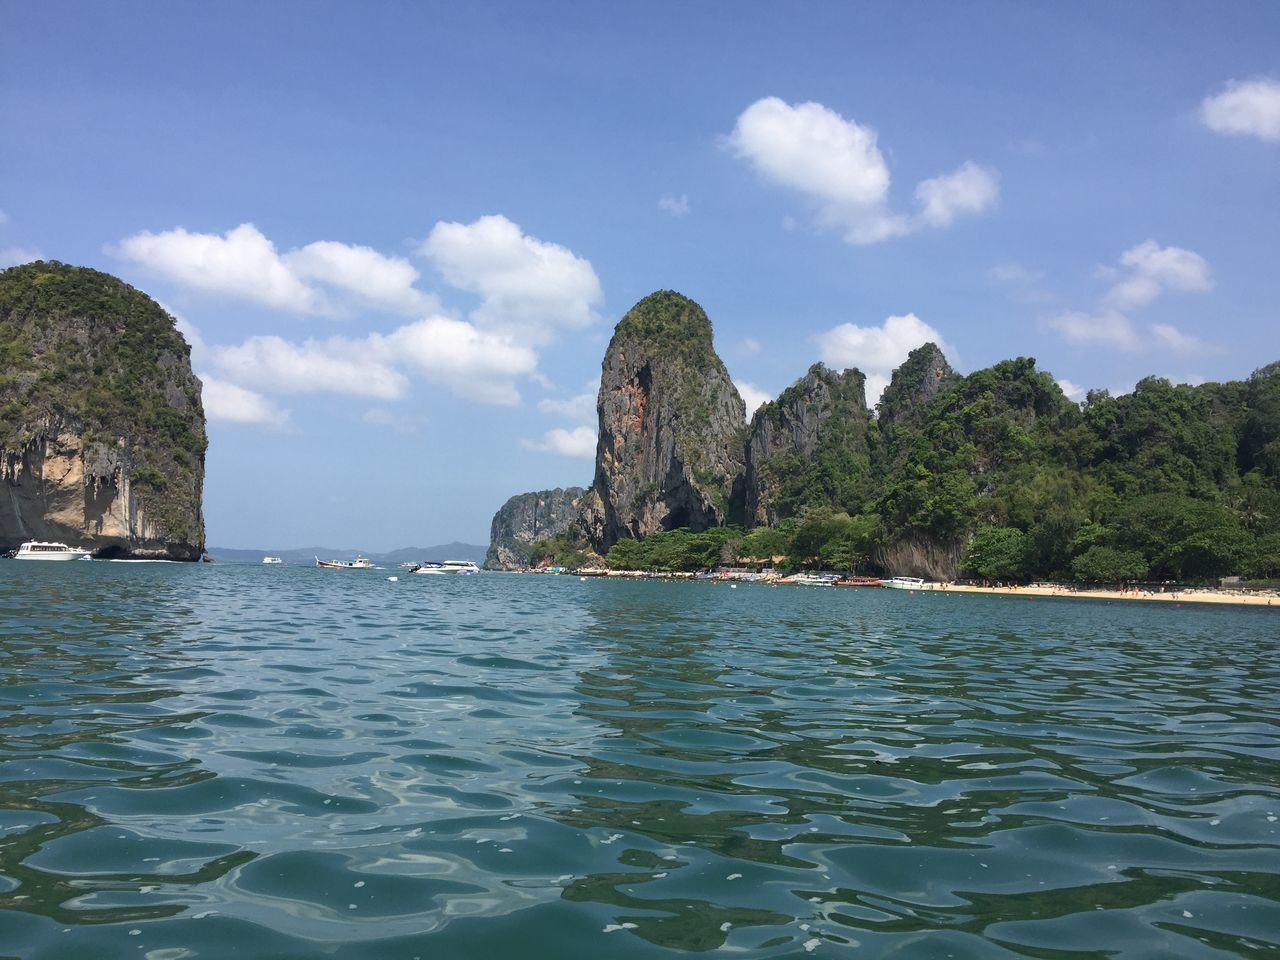 island by the sea in Krabi city of Thailand Beauty In Nature Beginnings Cliff Day Destiny Exploration Explore Happiness Hope Hopes And Dreams Inspiration Inspired Inspired By Nature Nature No People Outdoors Scenics Sea Sky Startup Tourism Tranquil Scene Tranquility Travel Destinations